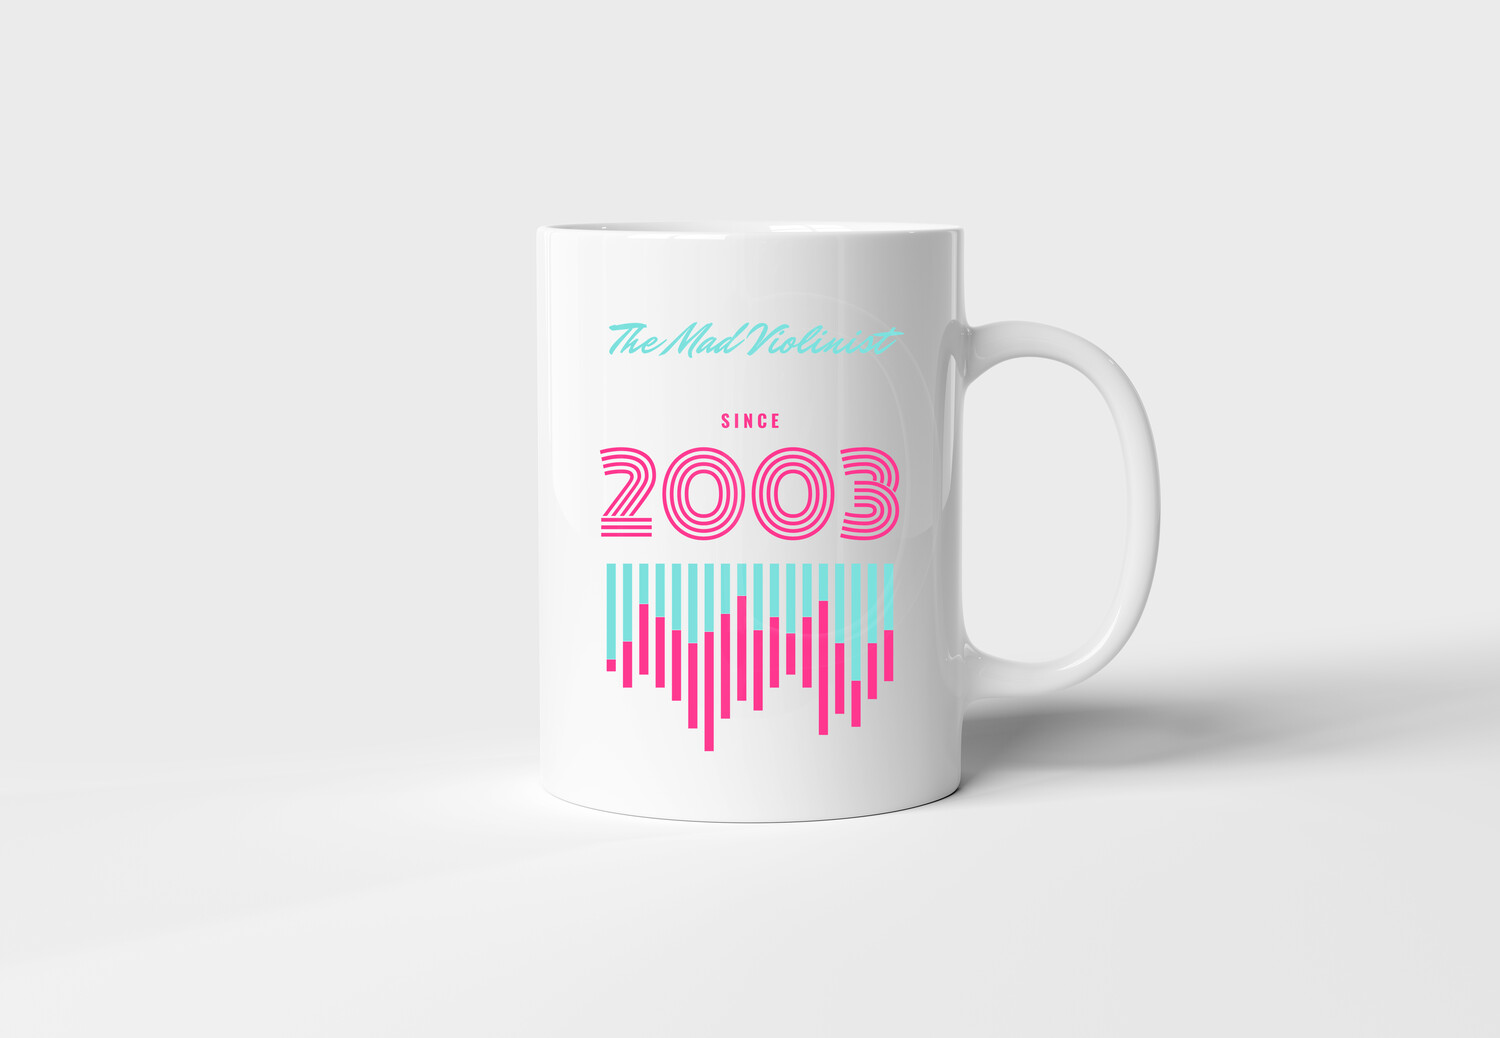 The Mad Violinist since 2003 Mug